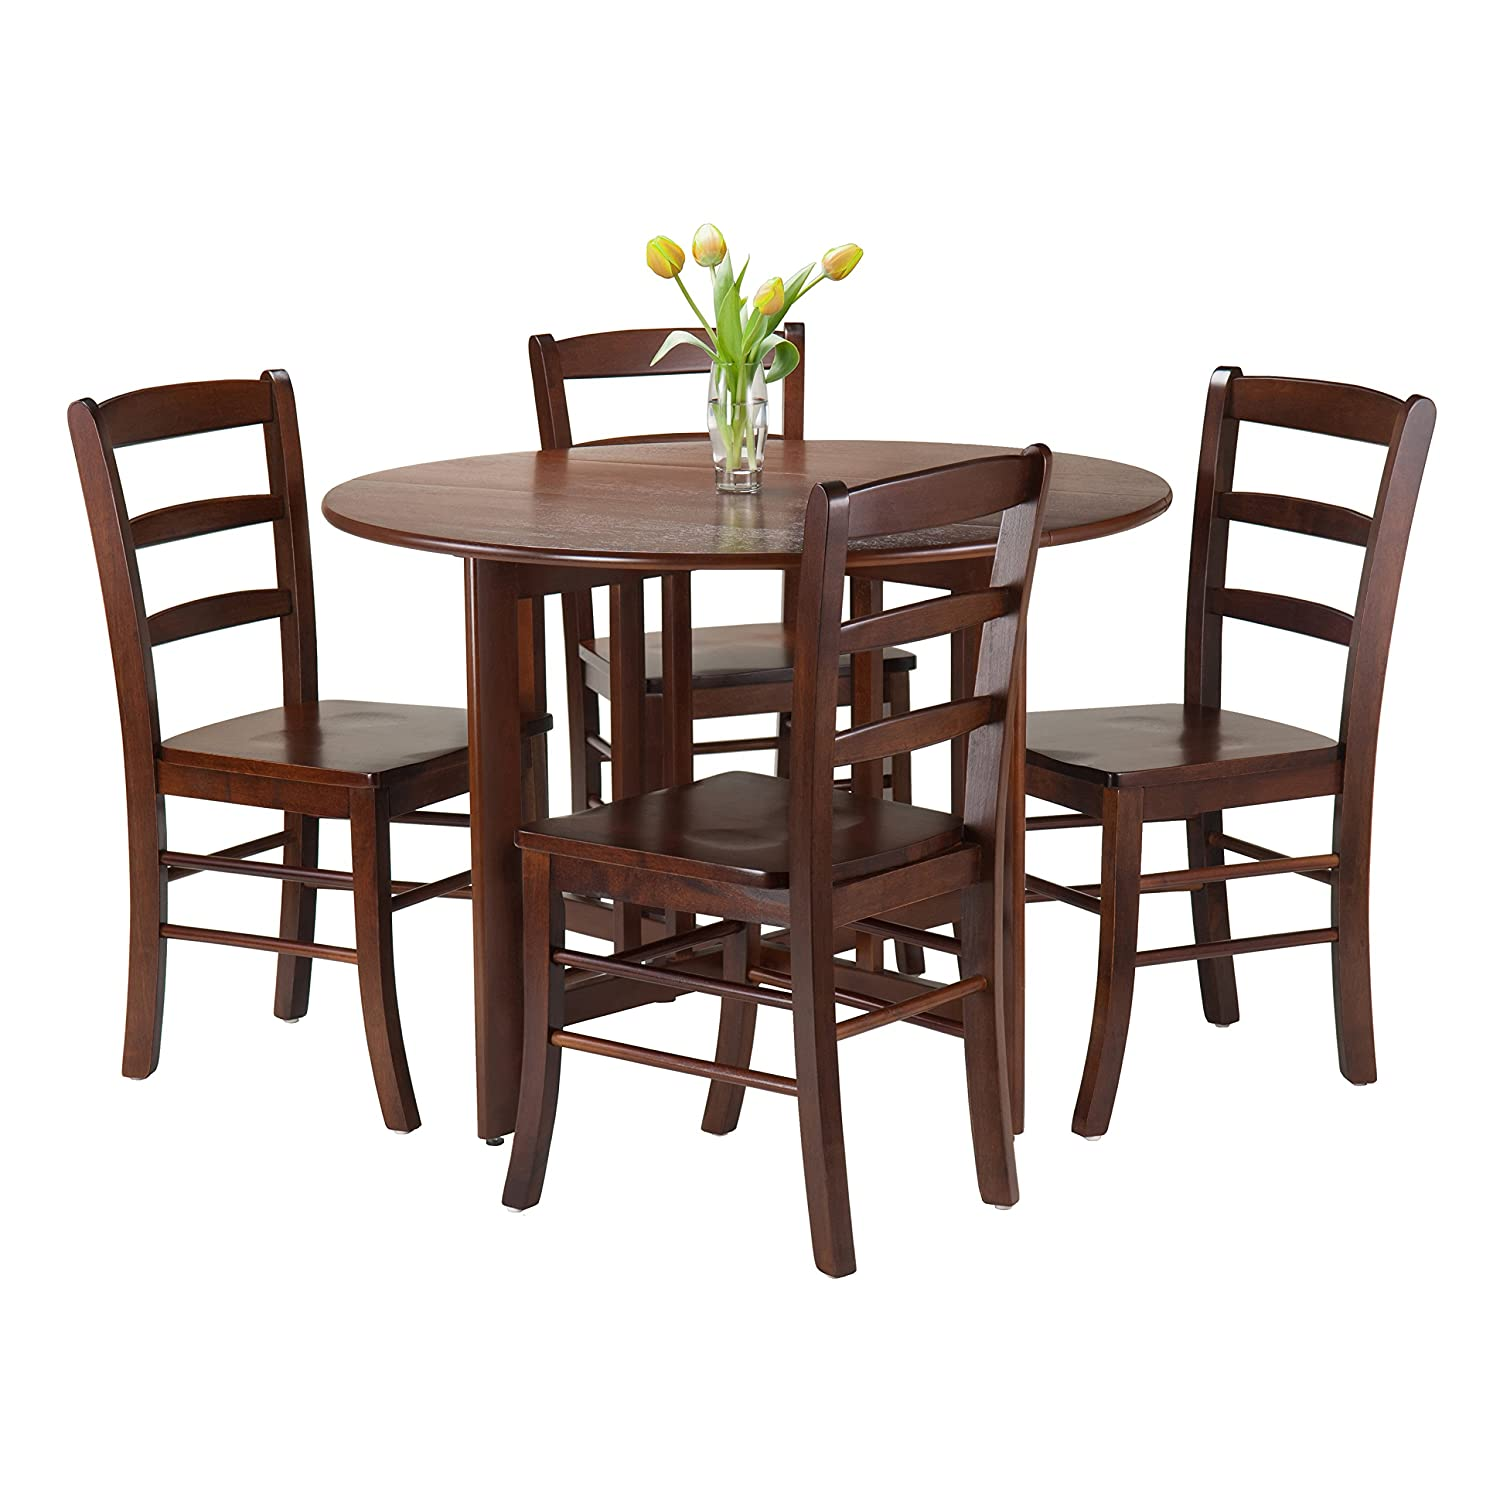 Great Amazon.com   Winsome 5 Piece Alamo Round Drop Leaf Table With 4 Ladder  Back, Brown   Table U0026 Chair Sets